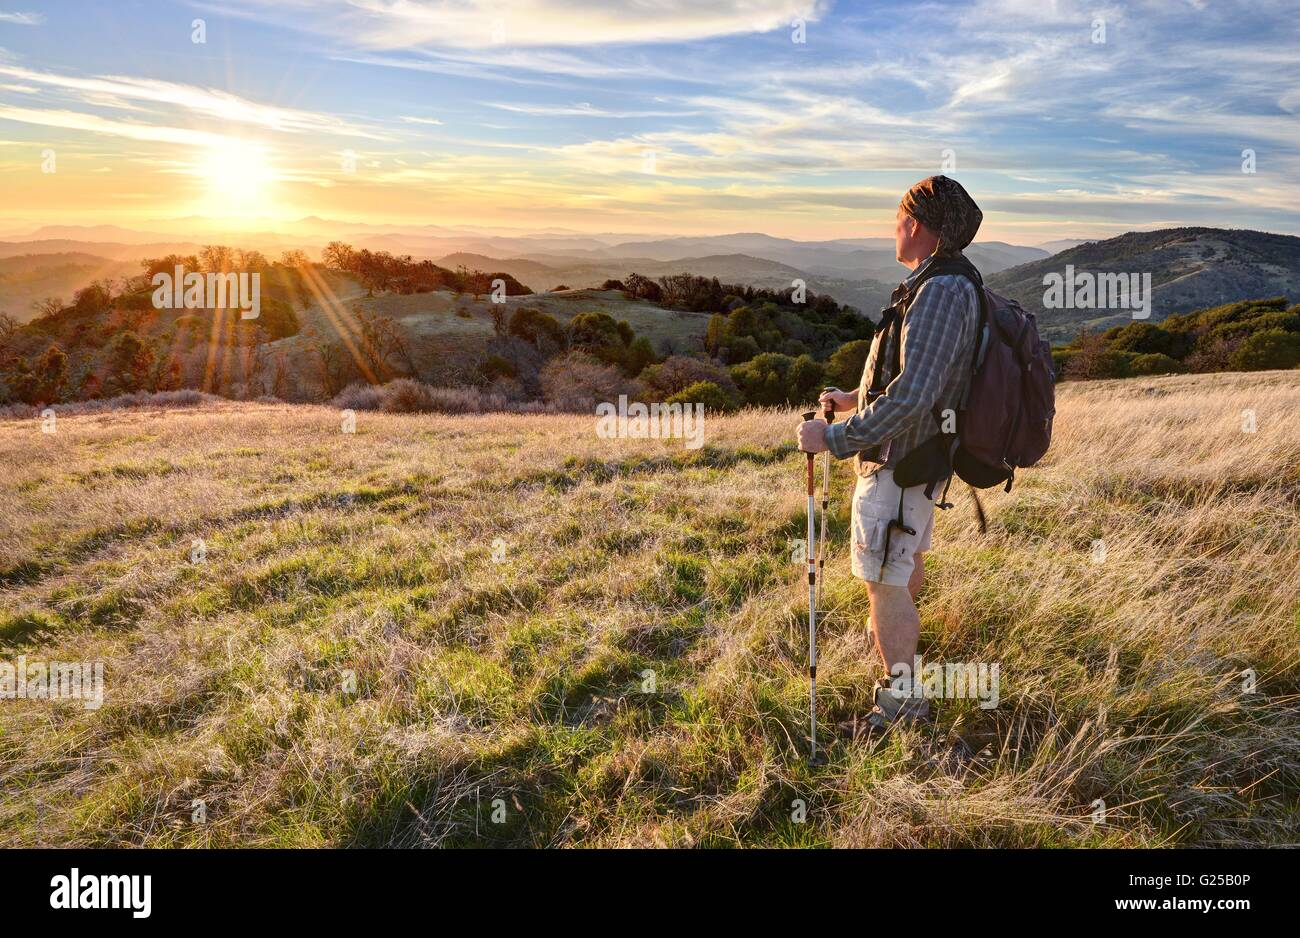 Man hiking and looking at view, Vulcan Mountain Wilderness Preserve, California, America, USA Stock Photo